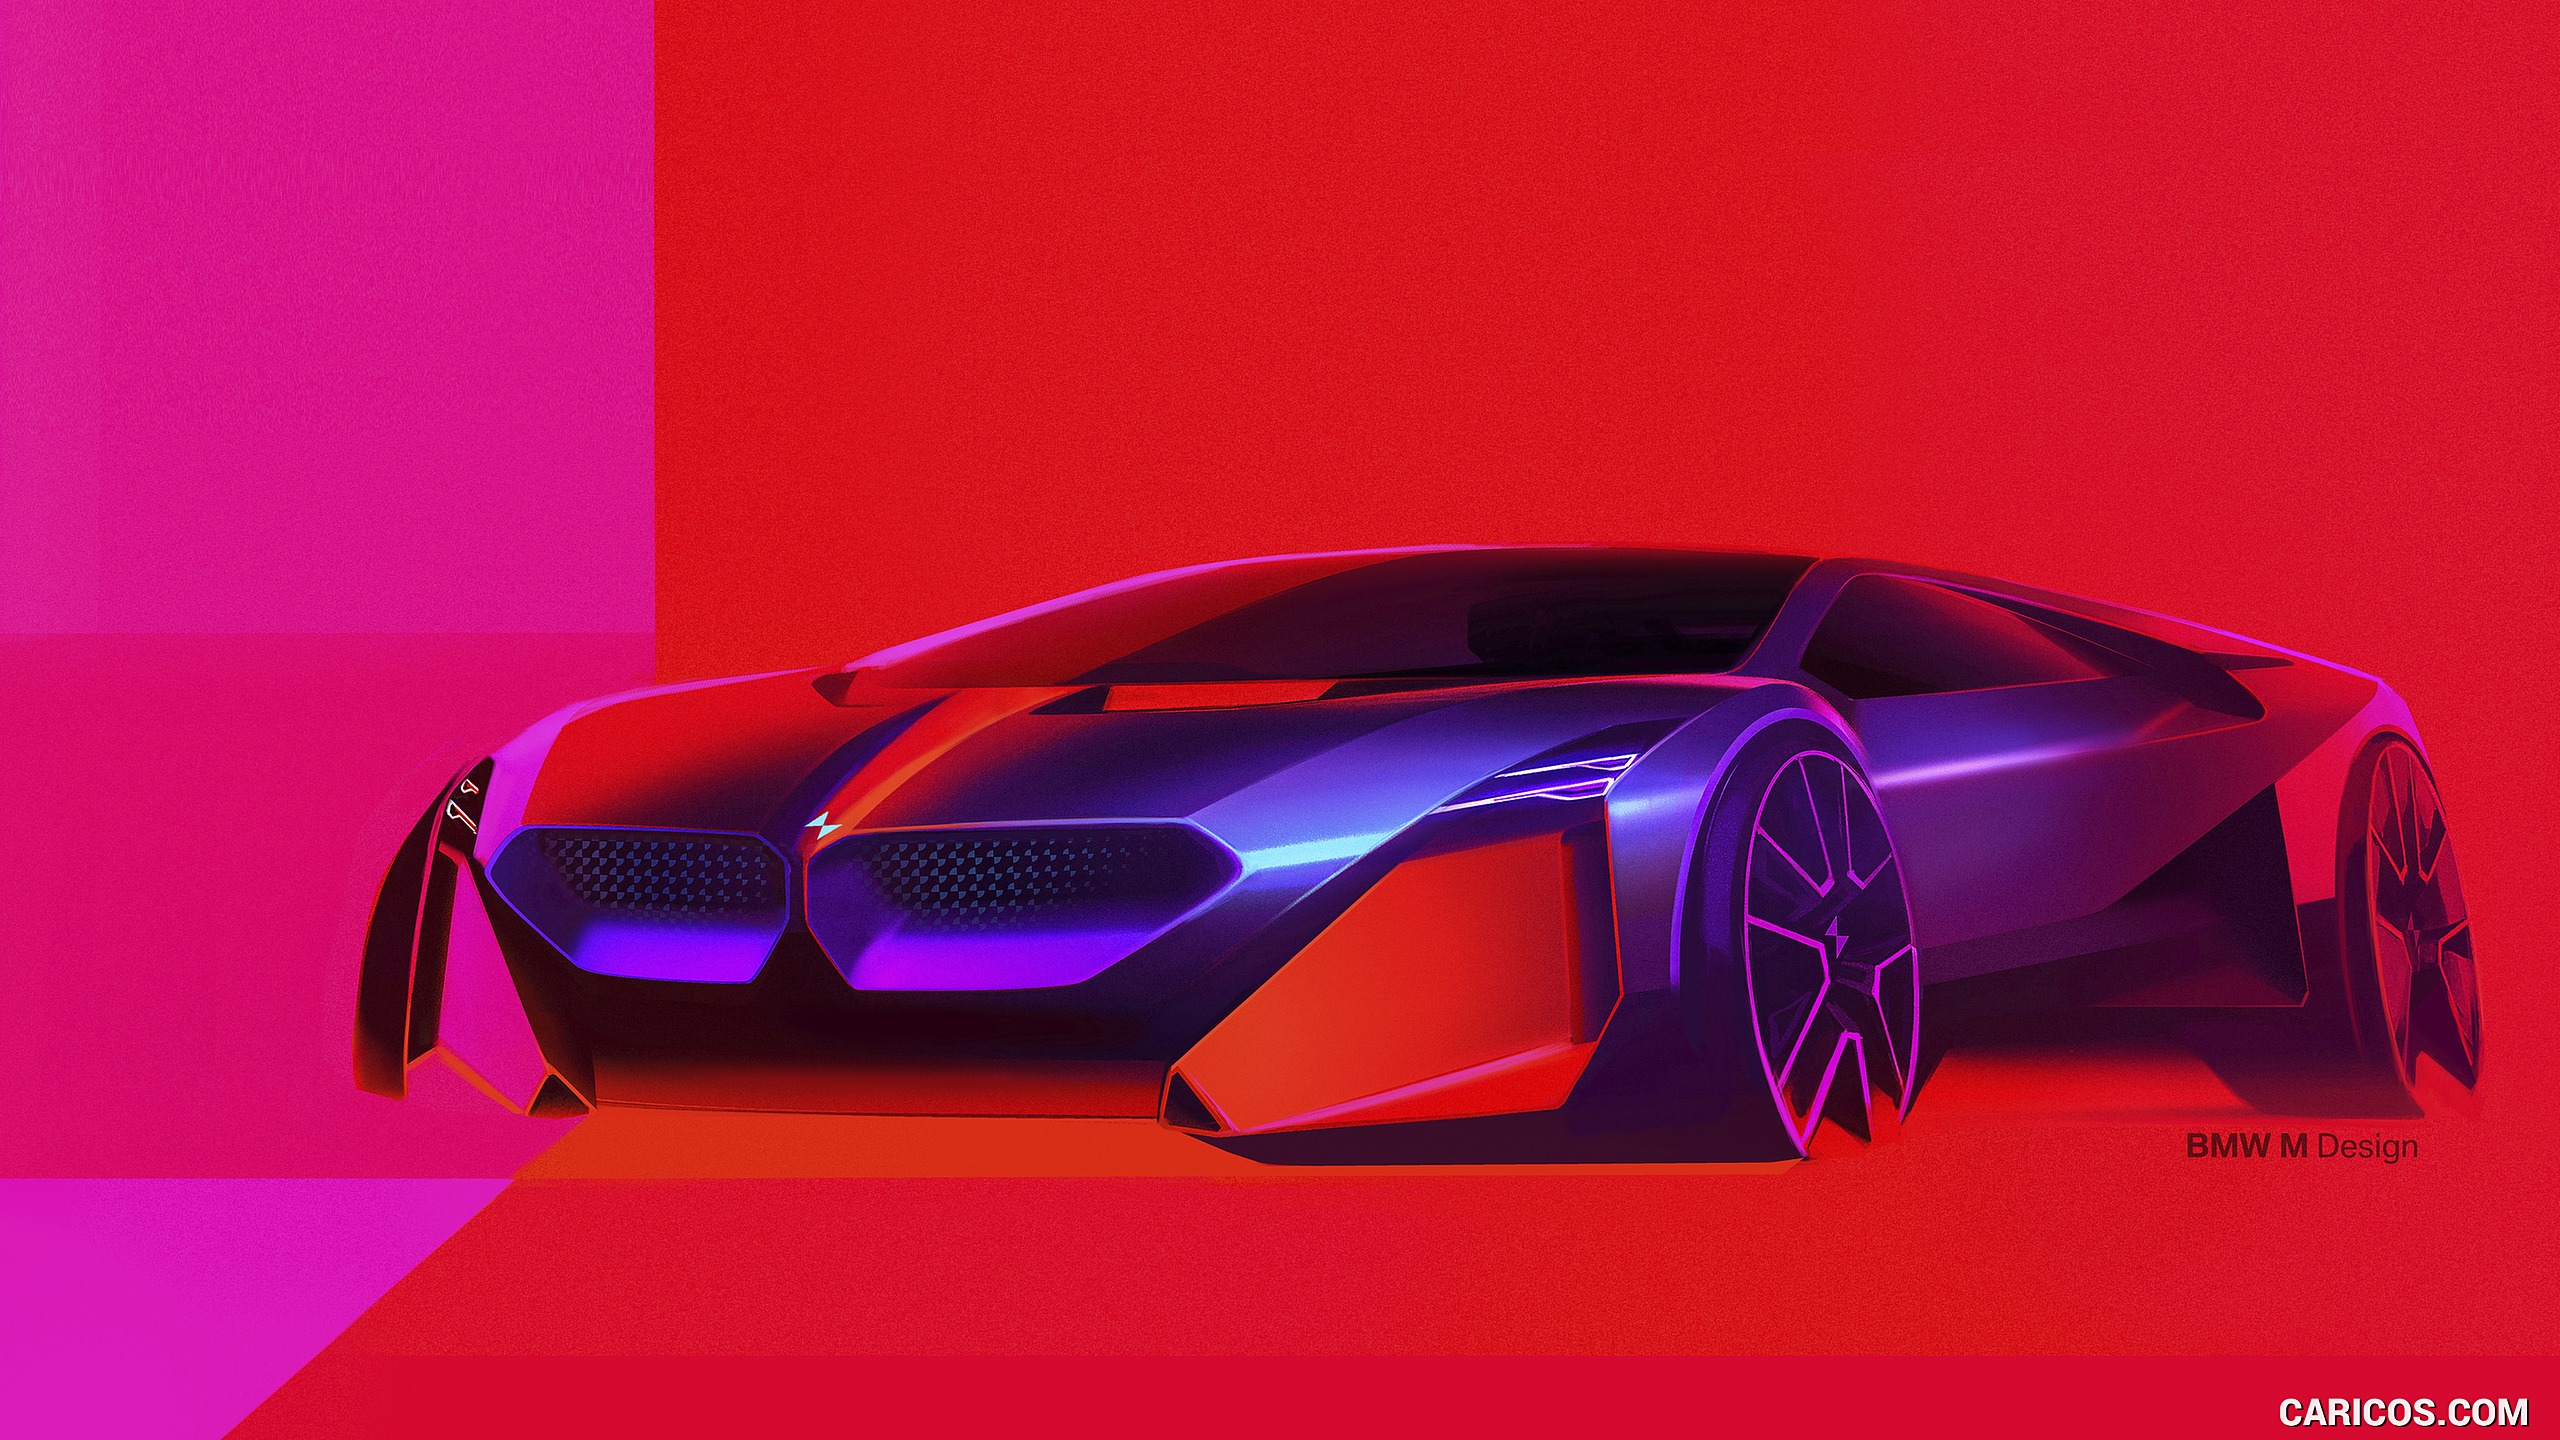 2019 BMW Vision M Next   Design Sketch HD Wallpaper 61 2560x1440